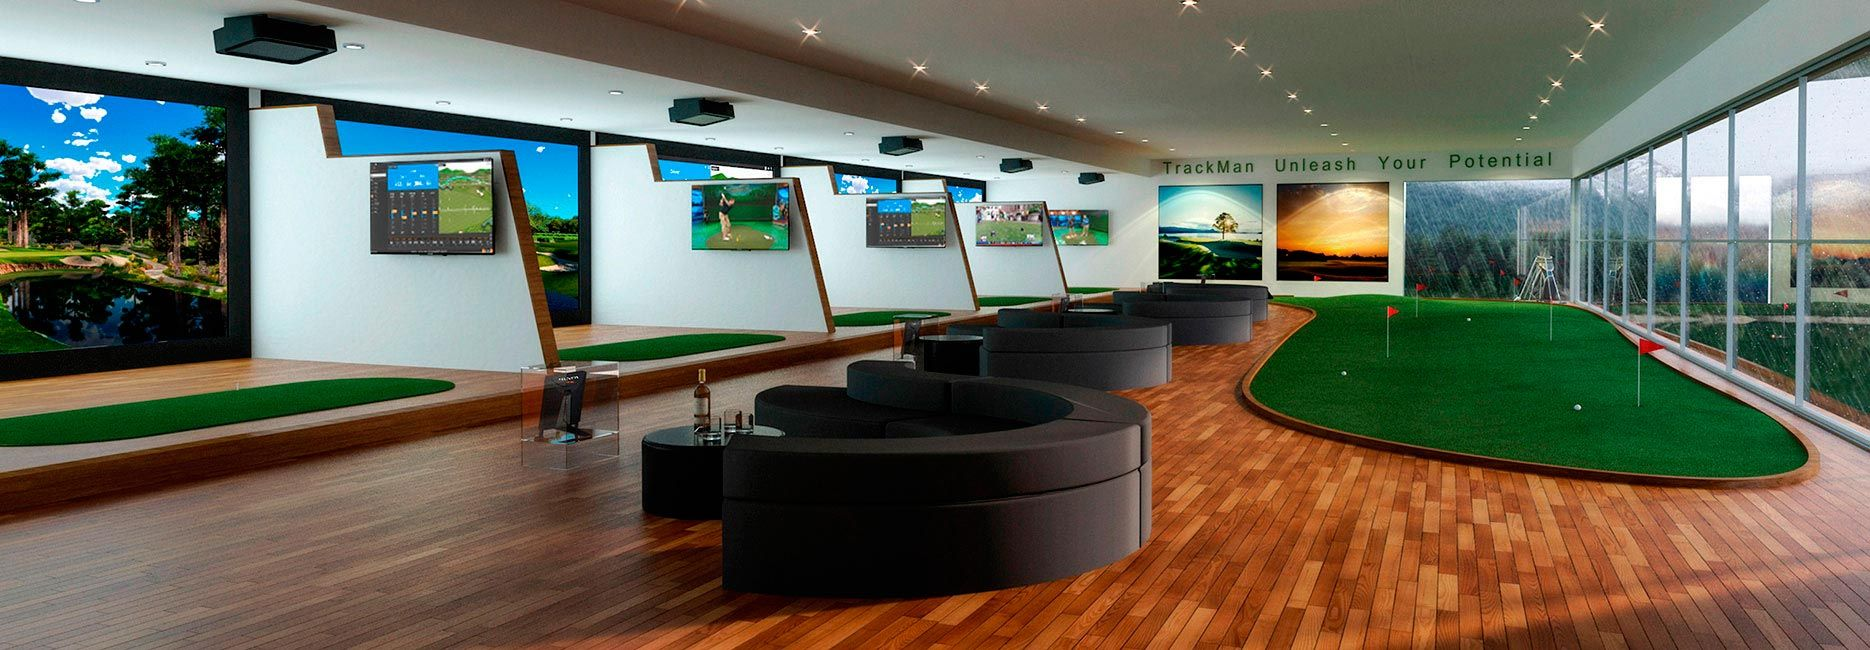 TrackMan Indoor Golf Simulator   Play, Practice And Teach 365 Days A Year